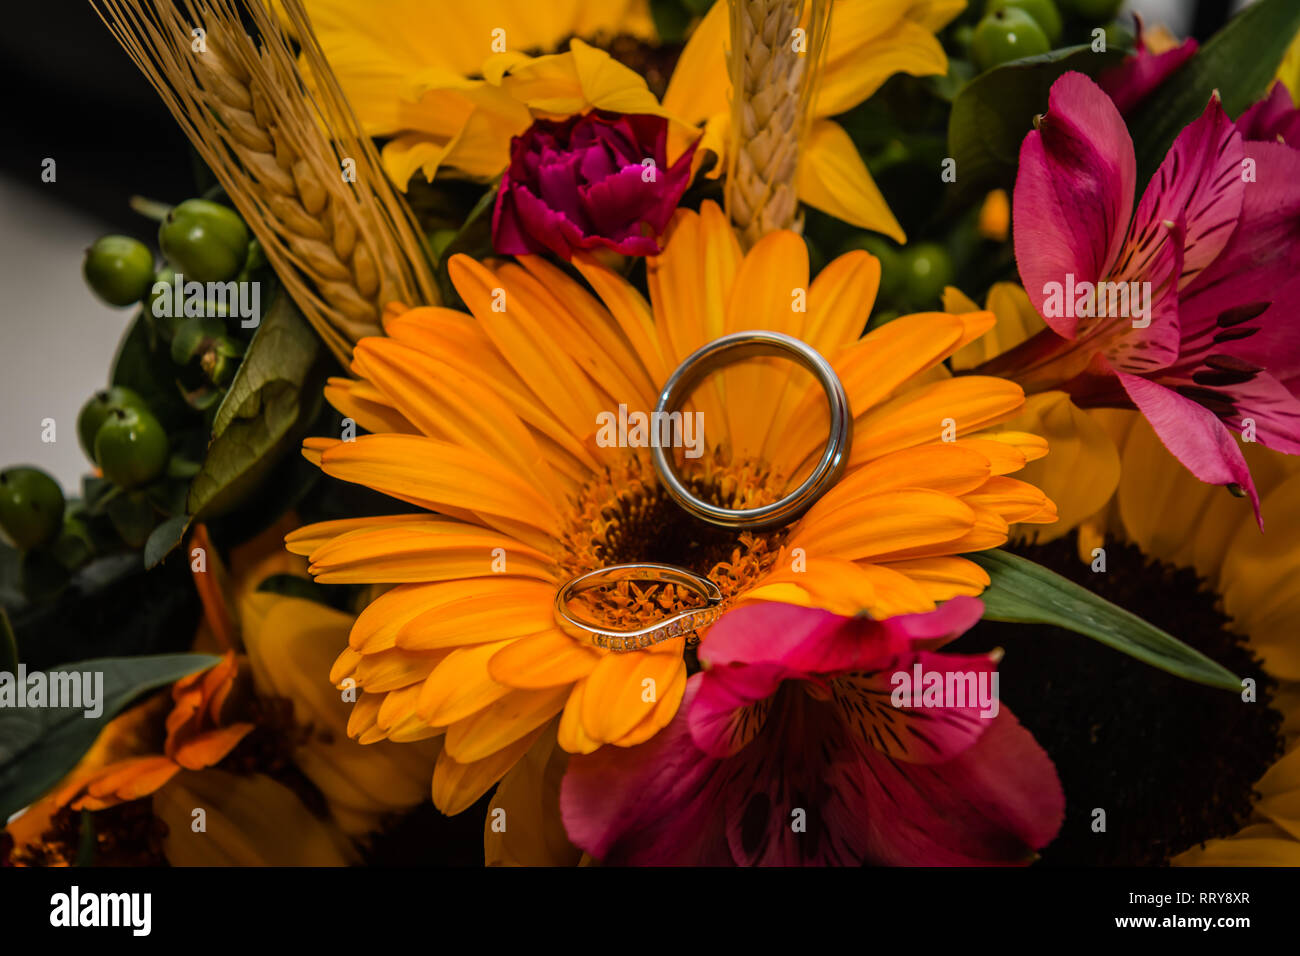 Wedding rings nestled in a bouquet of colorful flowers - Stock Image